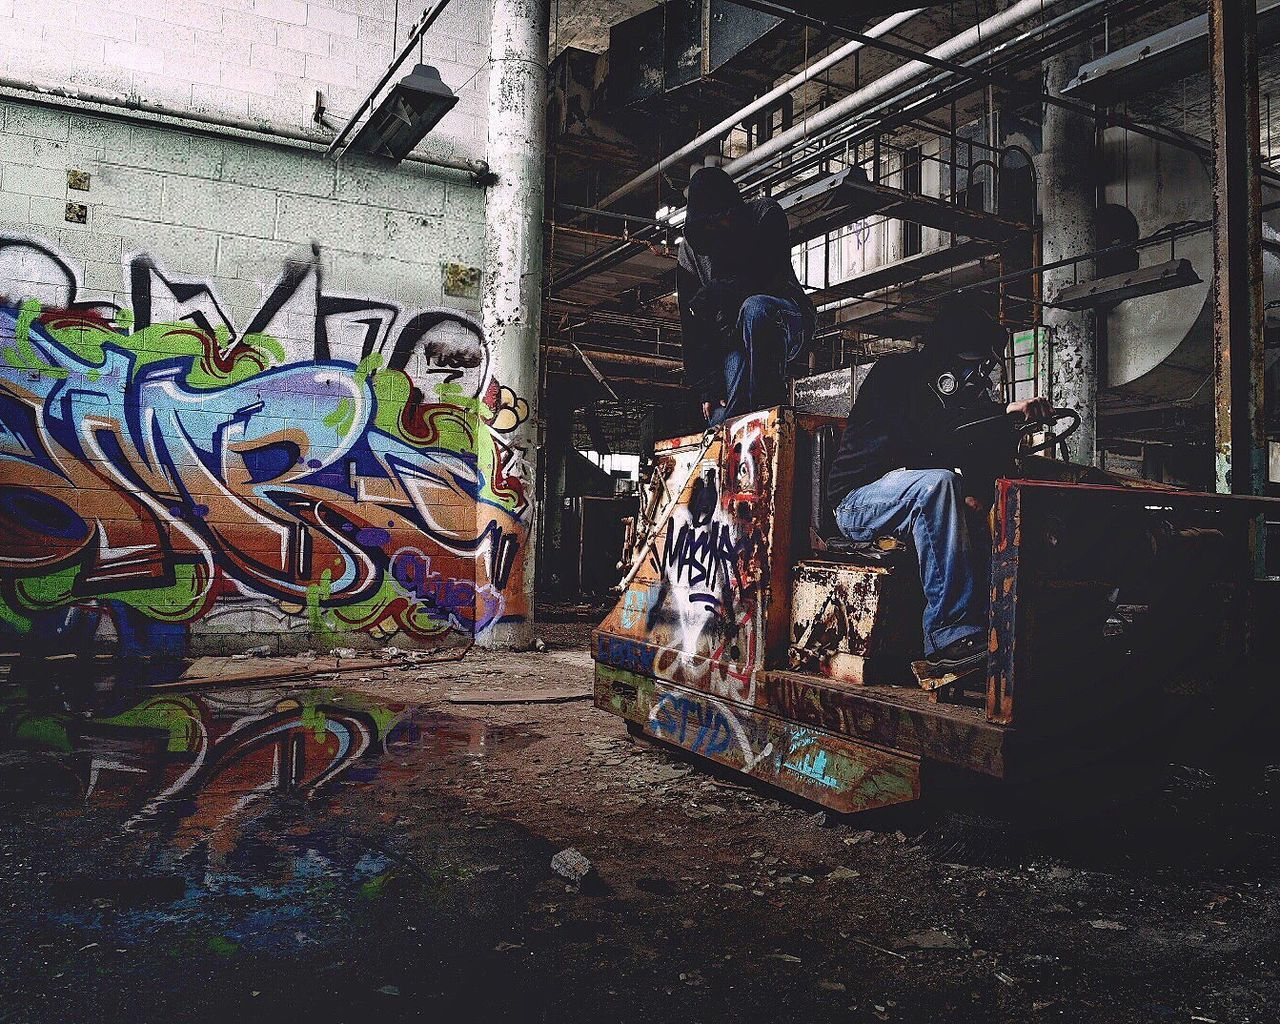 ☠️Partners In Grime ☠️ Graffiti Art And Craft Creativity Multi Colored Spray Paint Day Outdoors No People Abandoned Abandoned Places Abandoned Buildings Grimey Portrait Portraits Portrait Photography Finding New Frontiers